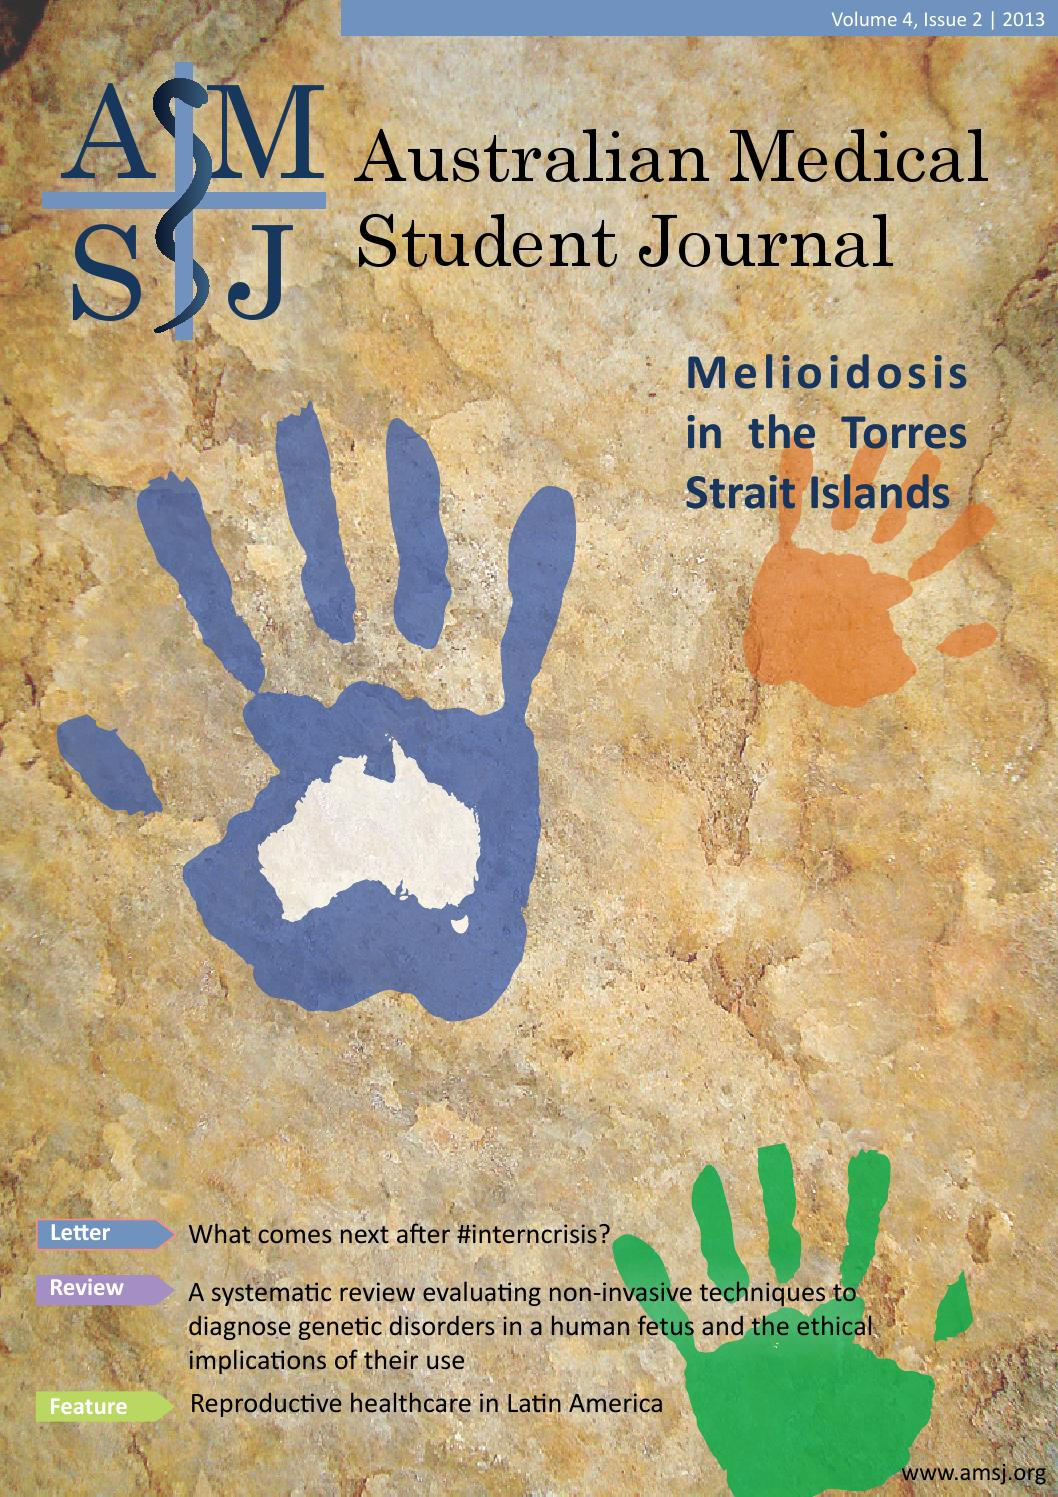 Australian Medical Student Journal Vol 4 Issue 2 By Hydrogen Power Diagram On The Cover North Coast August 17 Issuu